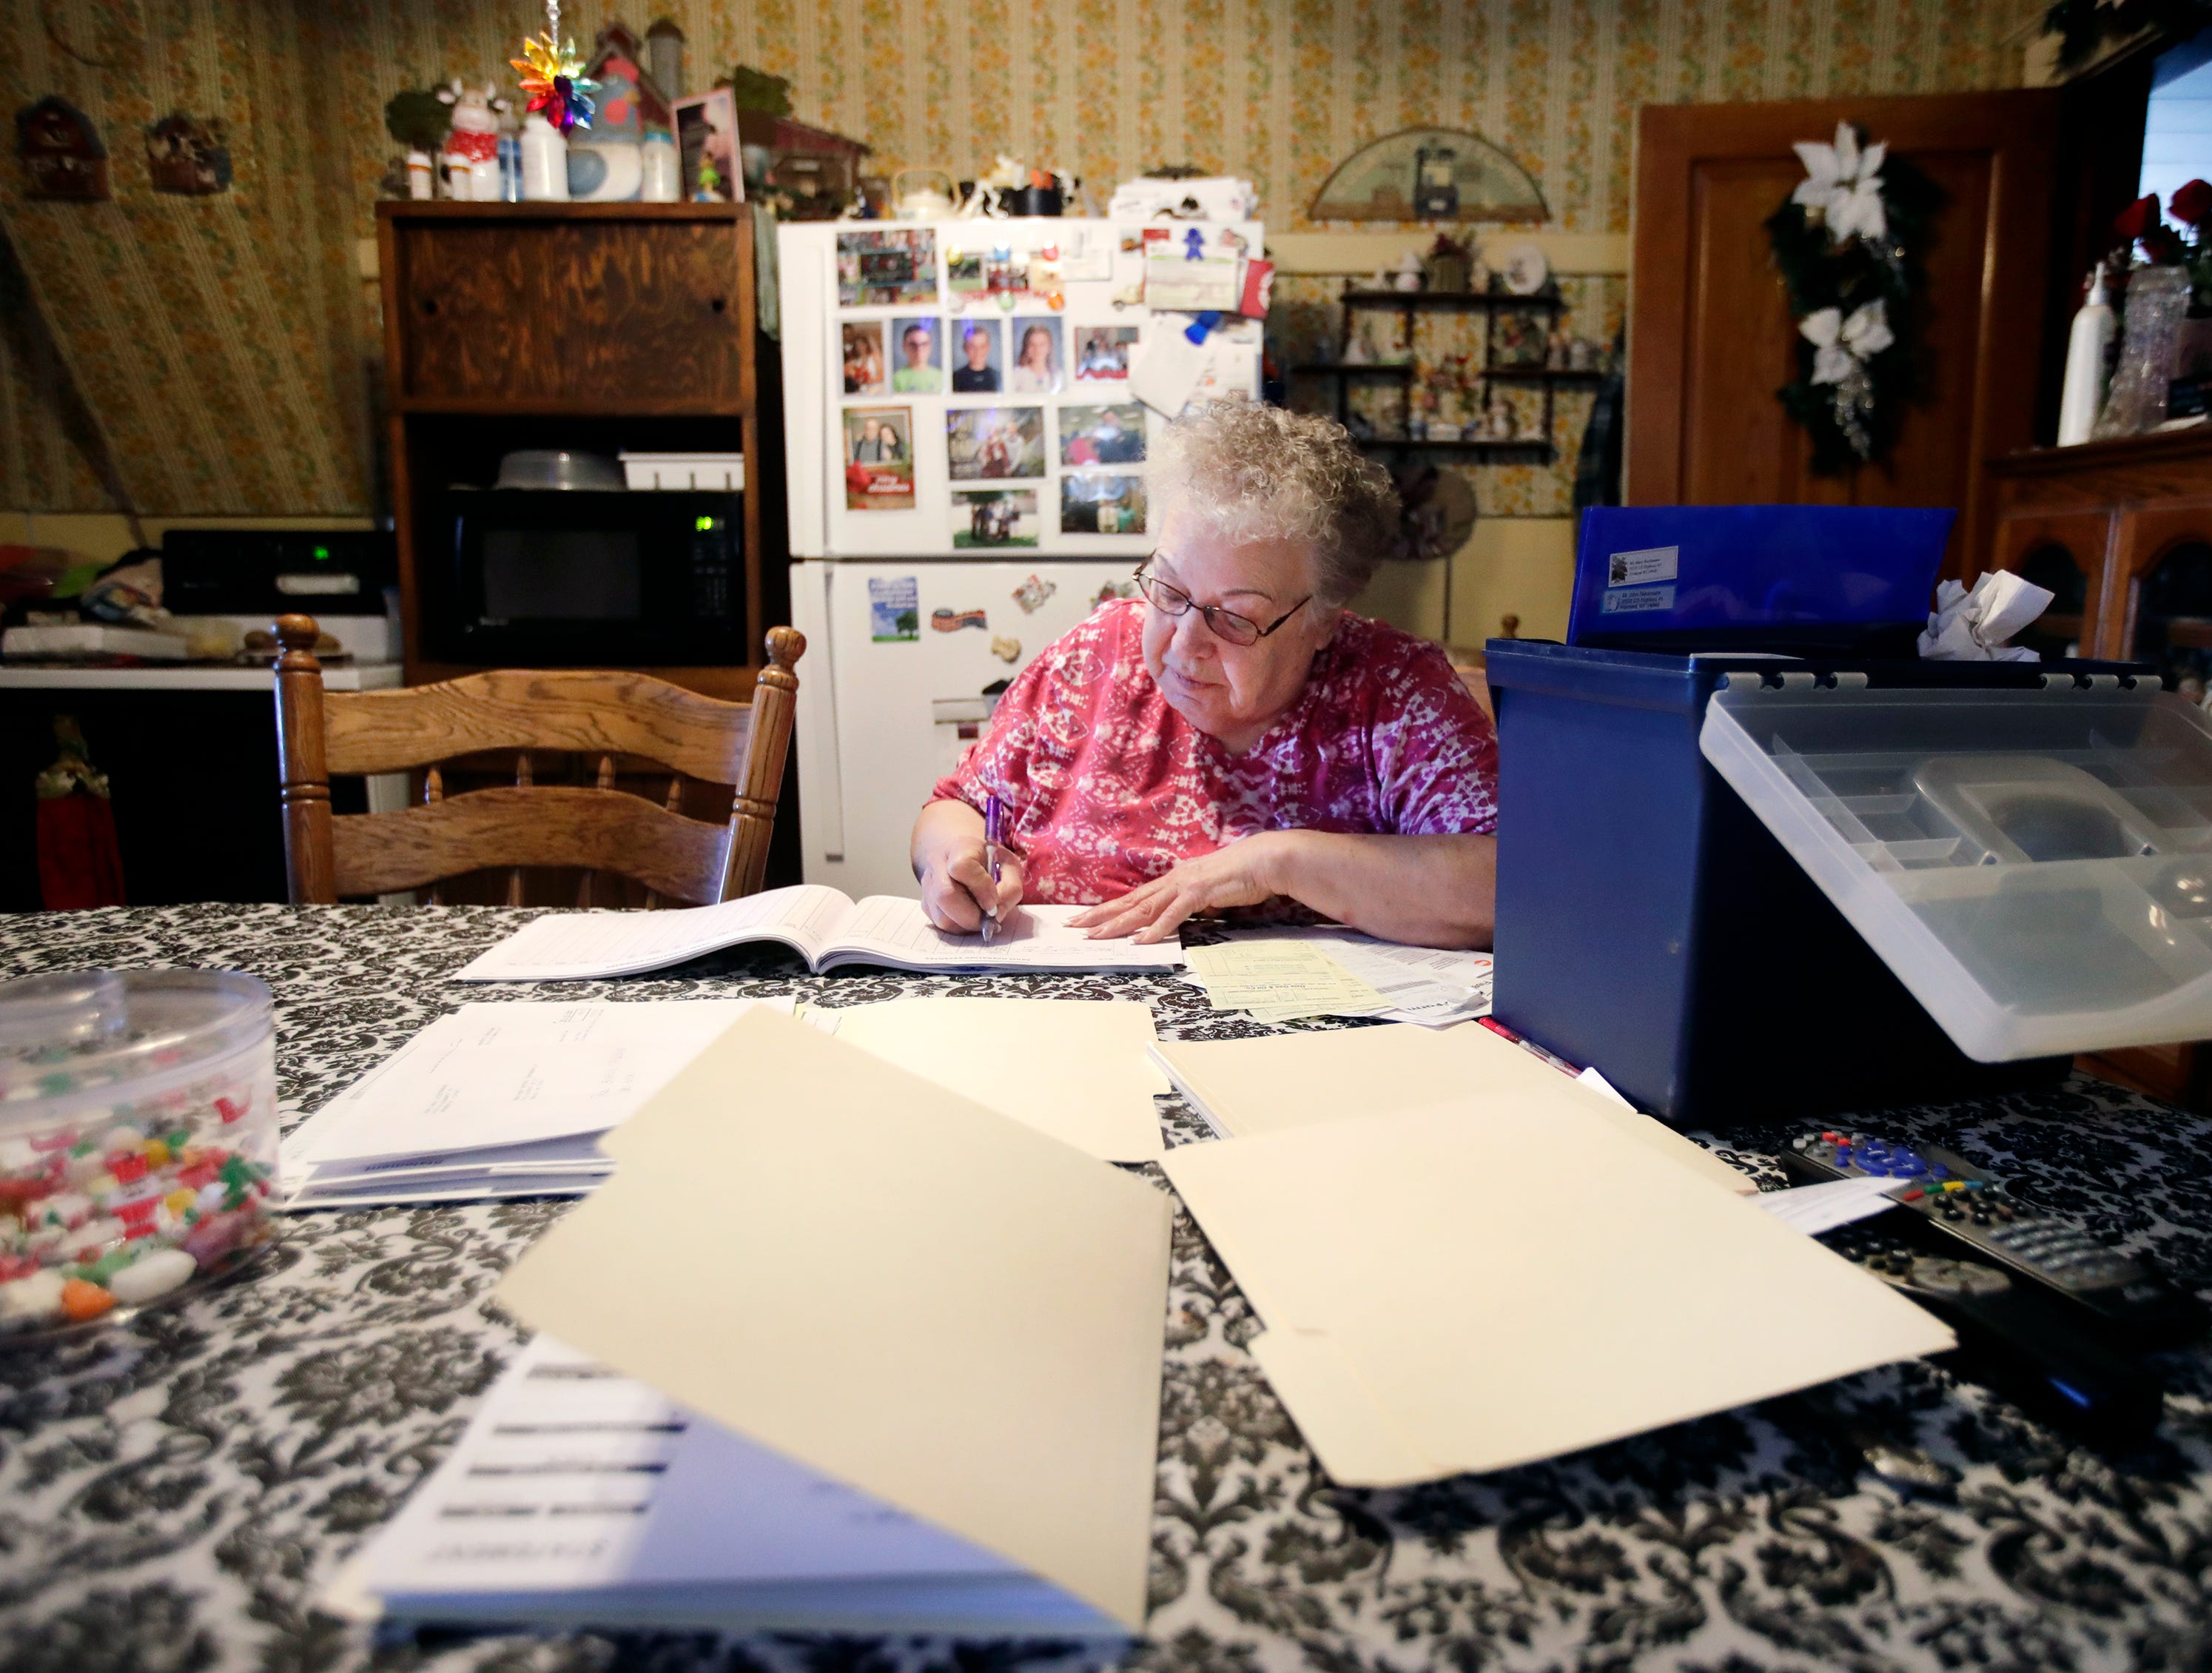 Mary Rieckmann documents farm expenses at her kitchen table while her husband, John, and sons do daily chores around their dairy farm Wednesday Feb. 13, 2019, in Fremont, Wis.Danny Damiani/USA TODAY NETWORK-Wisconsin